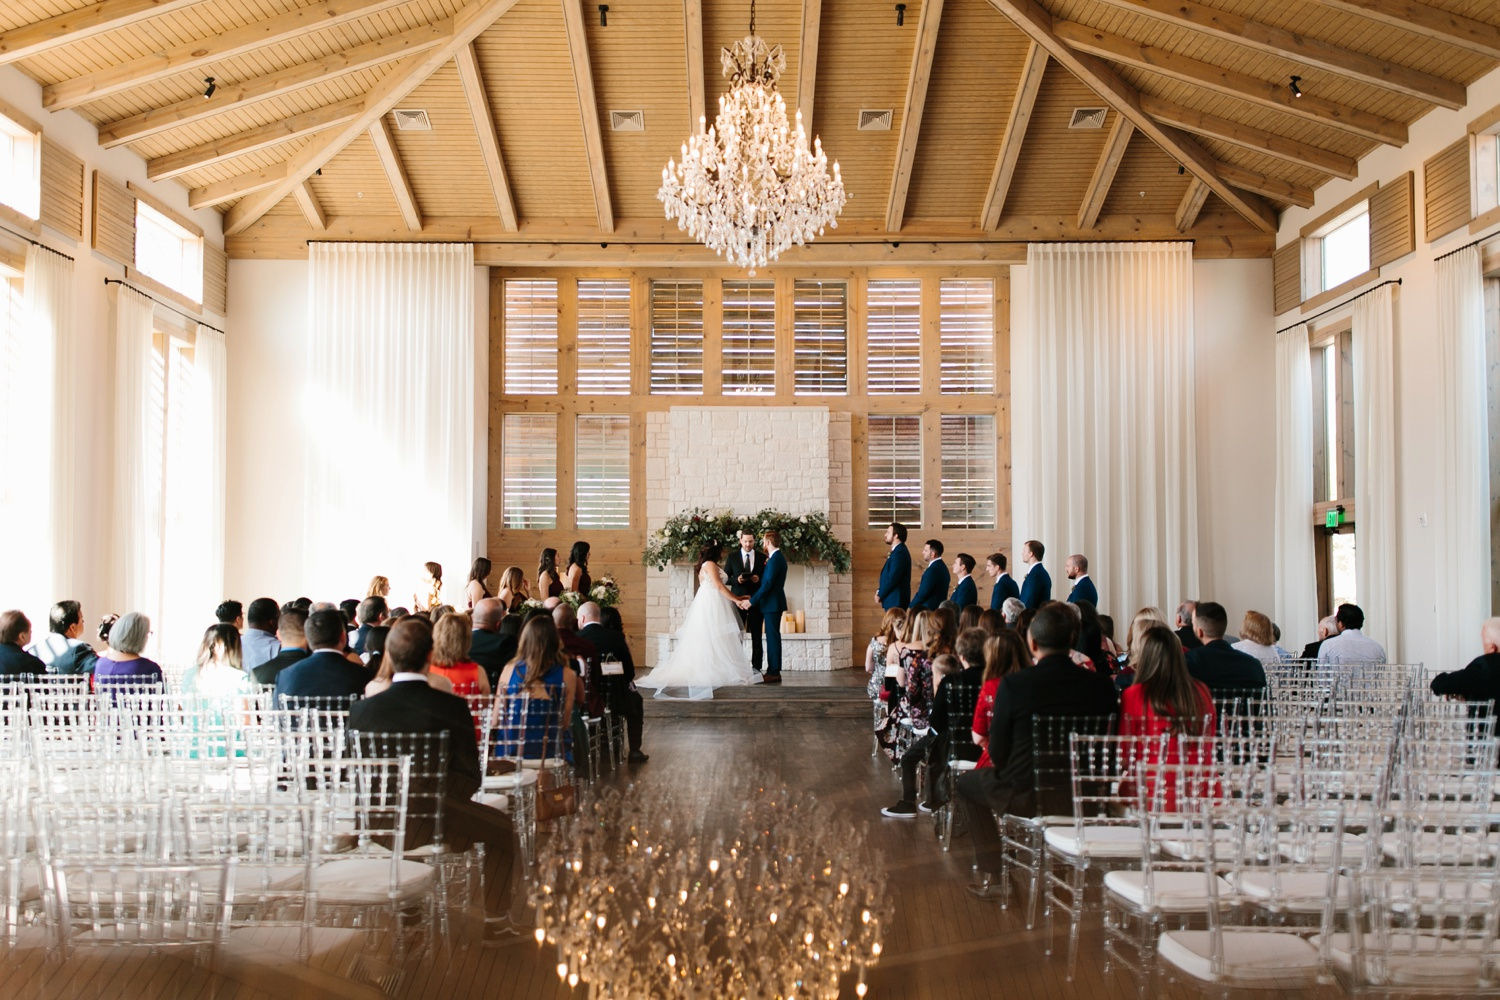 Grant + Lysette | a vibrant, deep burgundy and navy, and mixed metals wedding at Hidden Pines Chapel by North Texas Wedding Photographer Rachel Meagan Photography 083